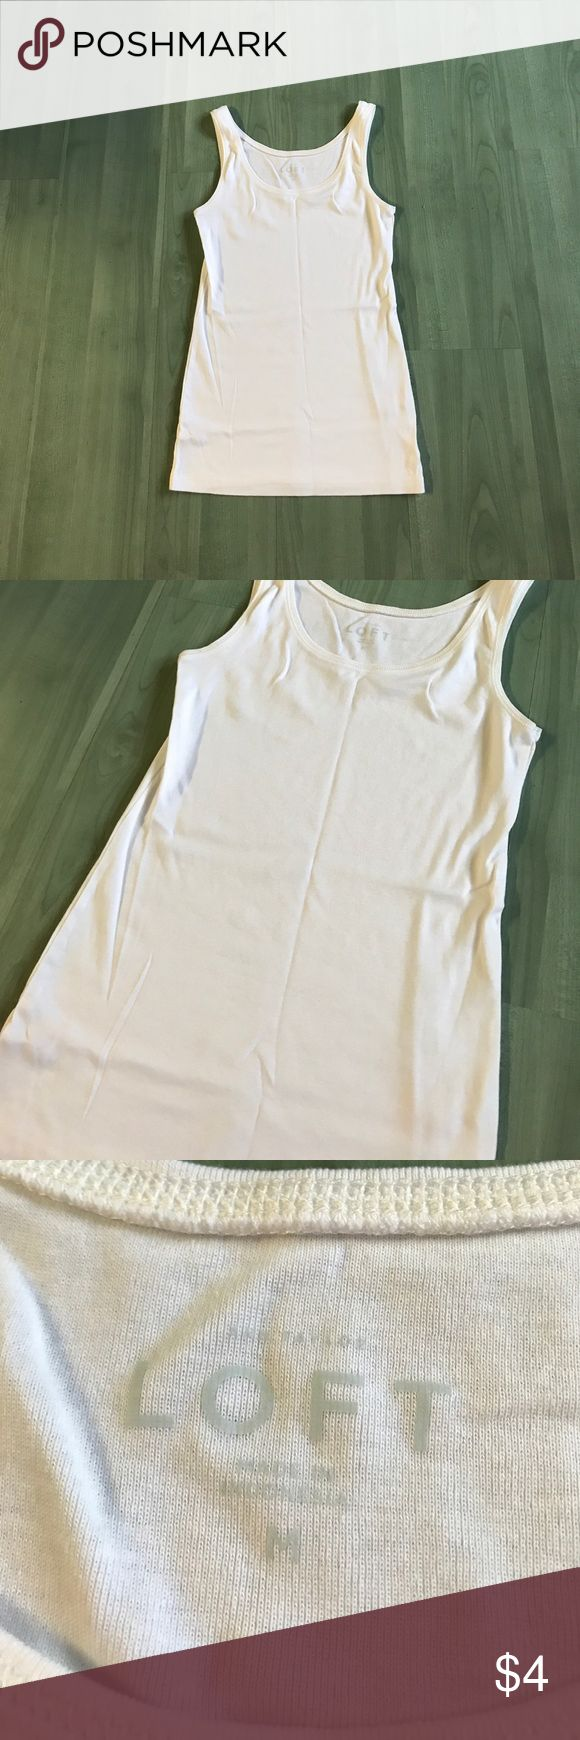 NWOT LOFT tank This was worn and washed once. Size medium. Runs small. Fits more like a small not medium. White colored essential layering tank top. No stains, smoke free home. LOFT Tops Tank Tops